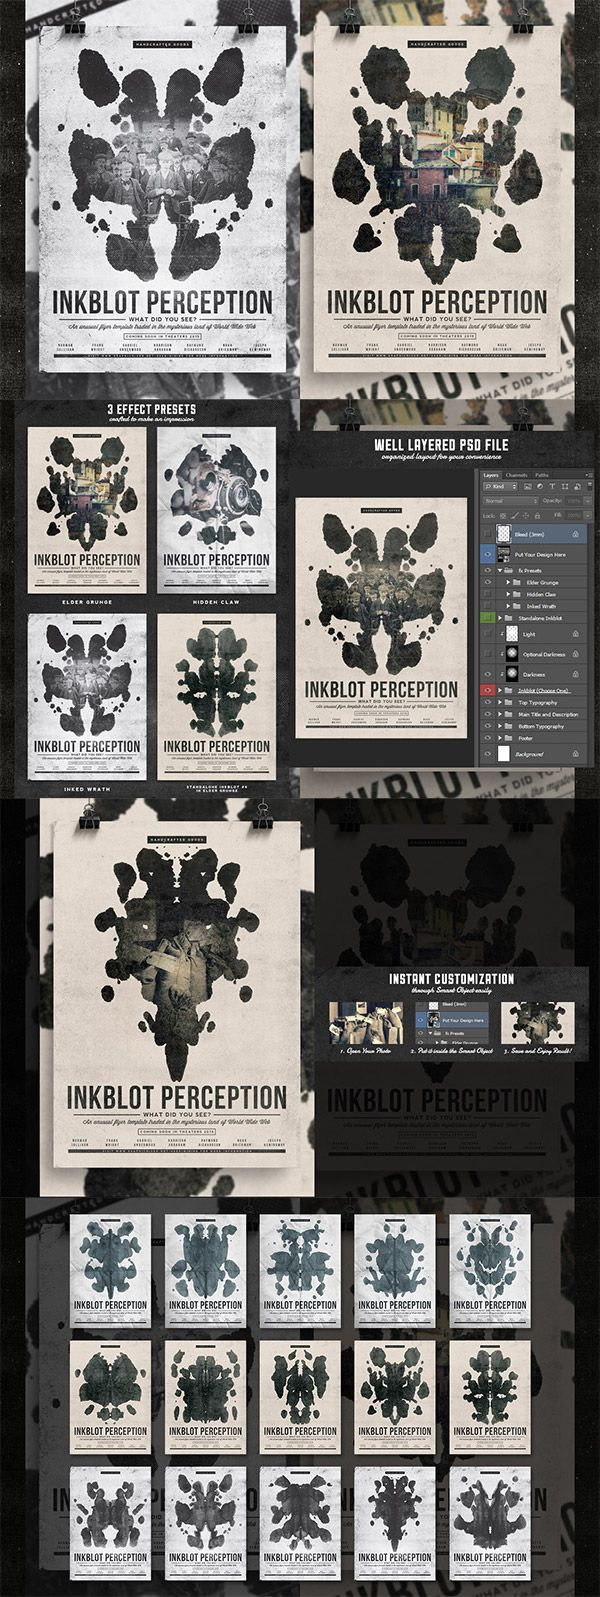 This week Access All Areas members can download a cool flyer template courtesy of Yusof Mining. The design is inspired by the Rorschach test and features 15 unique inkblot patterns made from real ink and paper. The template is A4 in size at 300dpi with 3mm bleed, making it ready for professional printing. Well organised …